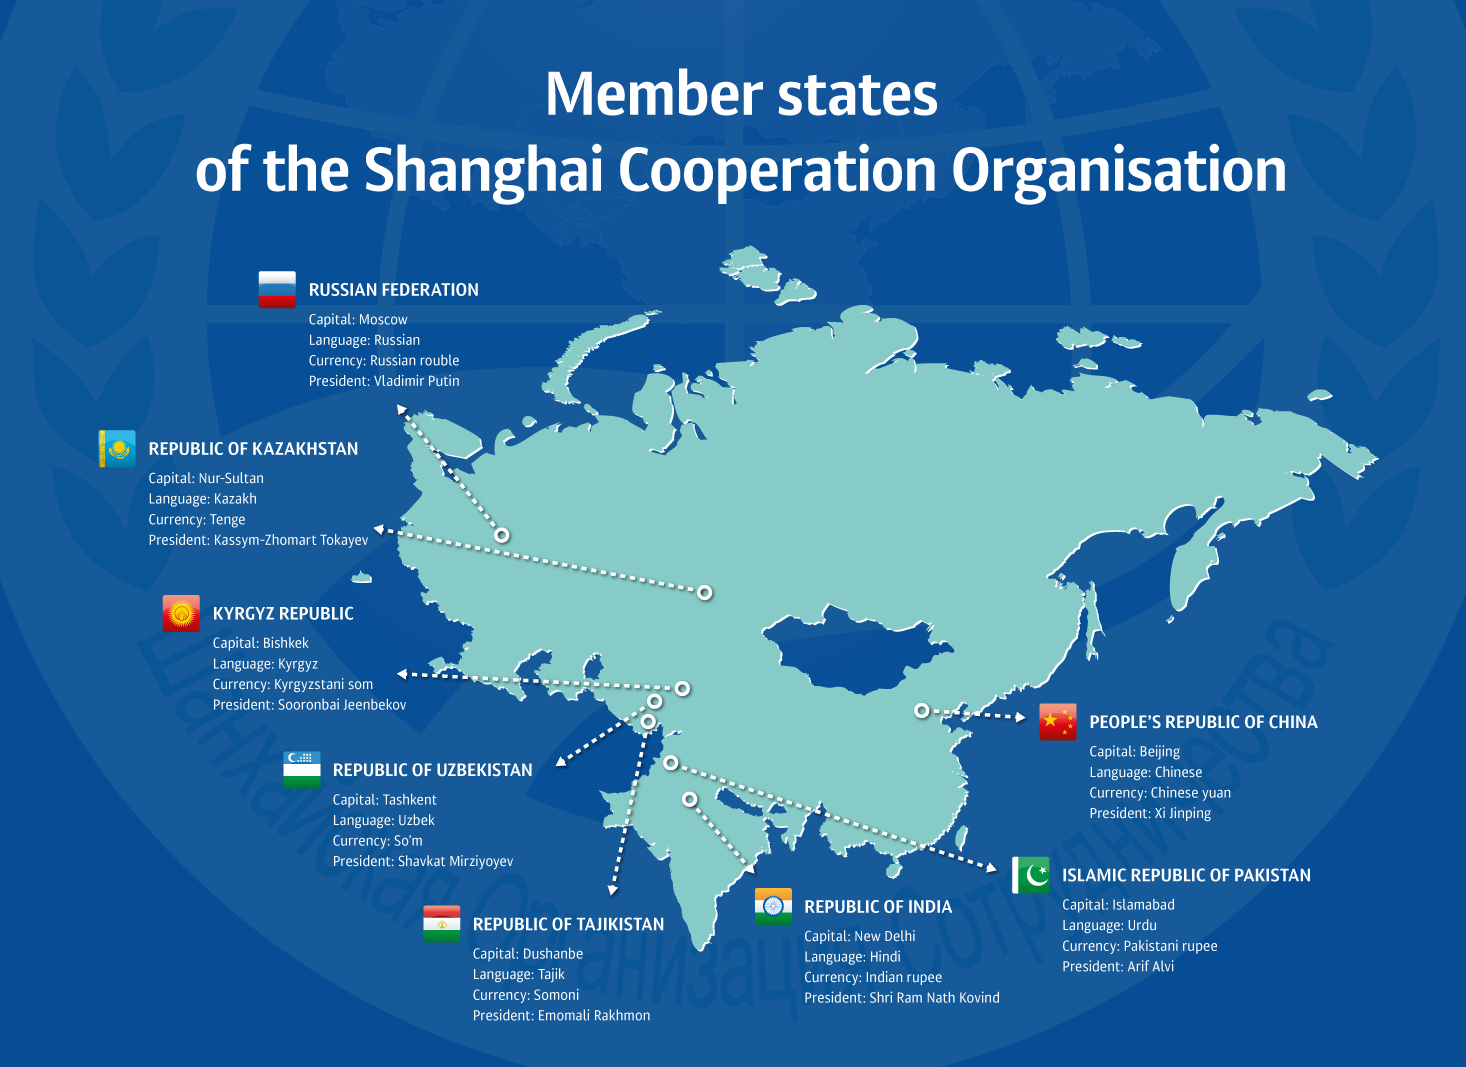 Member states of the Shanghai Cooperation Organisation